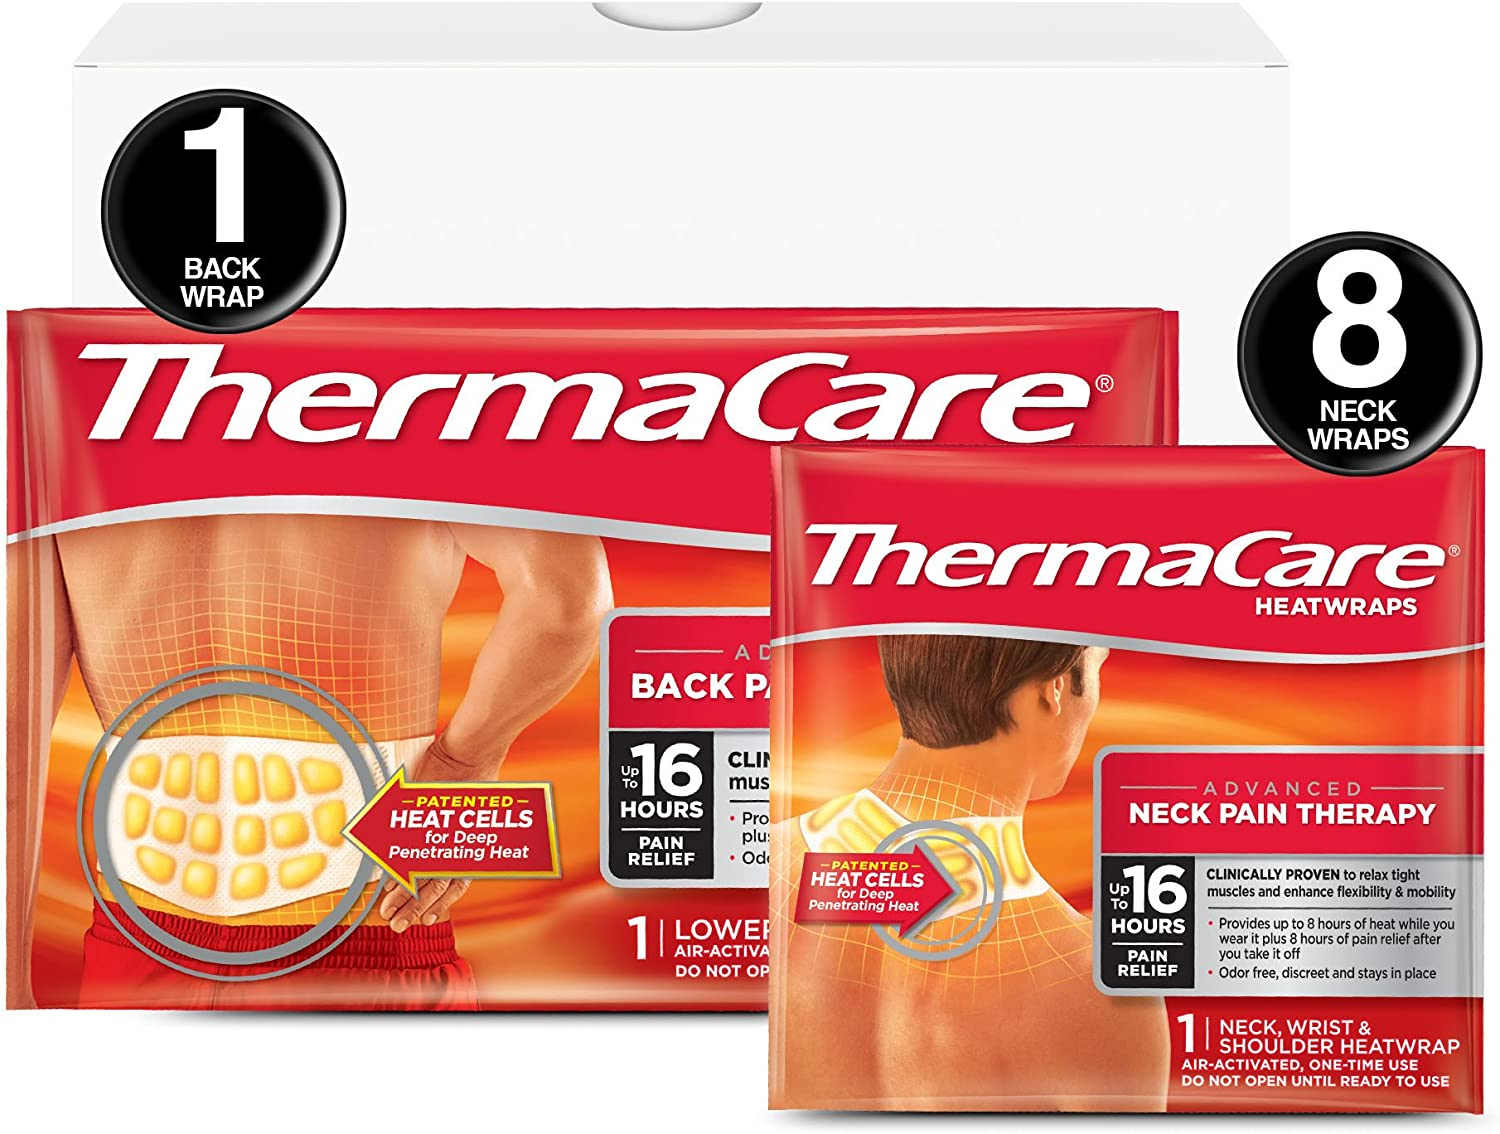 Amazon.com: ThermaCare Advanced Neck Pain and Back Pain (L-XL Size) Combo  Pack (8 Neck Wraps, 1 Back Wrap) Heatwraps, Up to 16 Hours of Pain Relief,  Neck & Wrist & Shoulder Use,